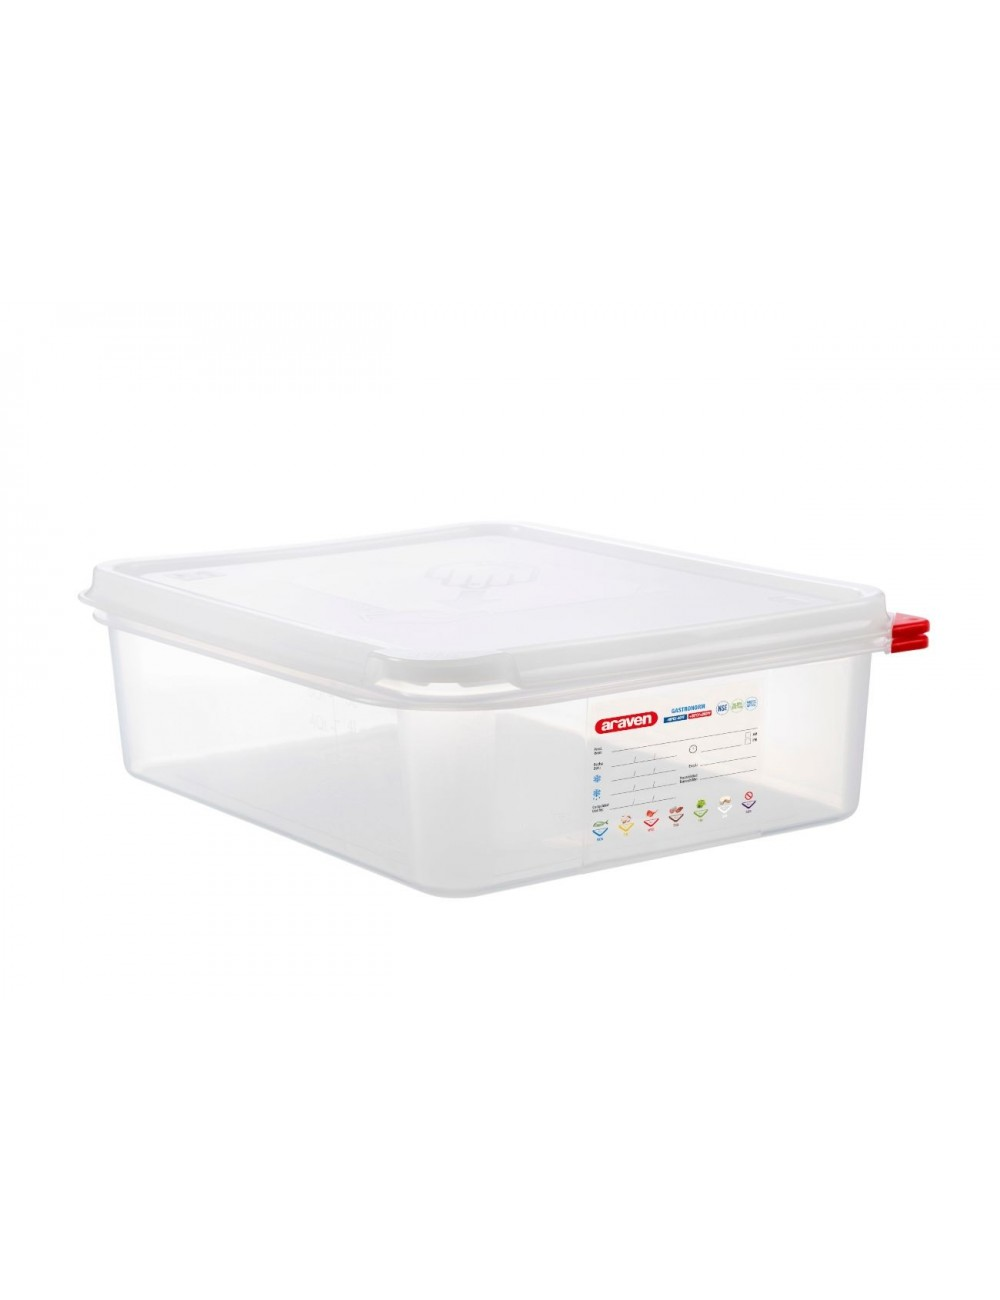 AIRTIGHT CONTAINER - GN 1/2 - Height 100 mm